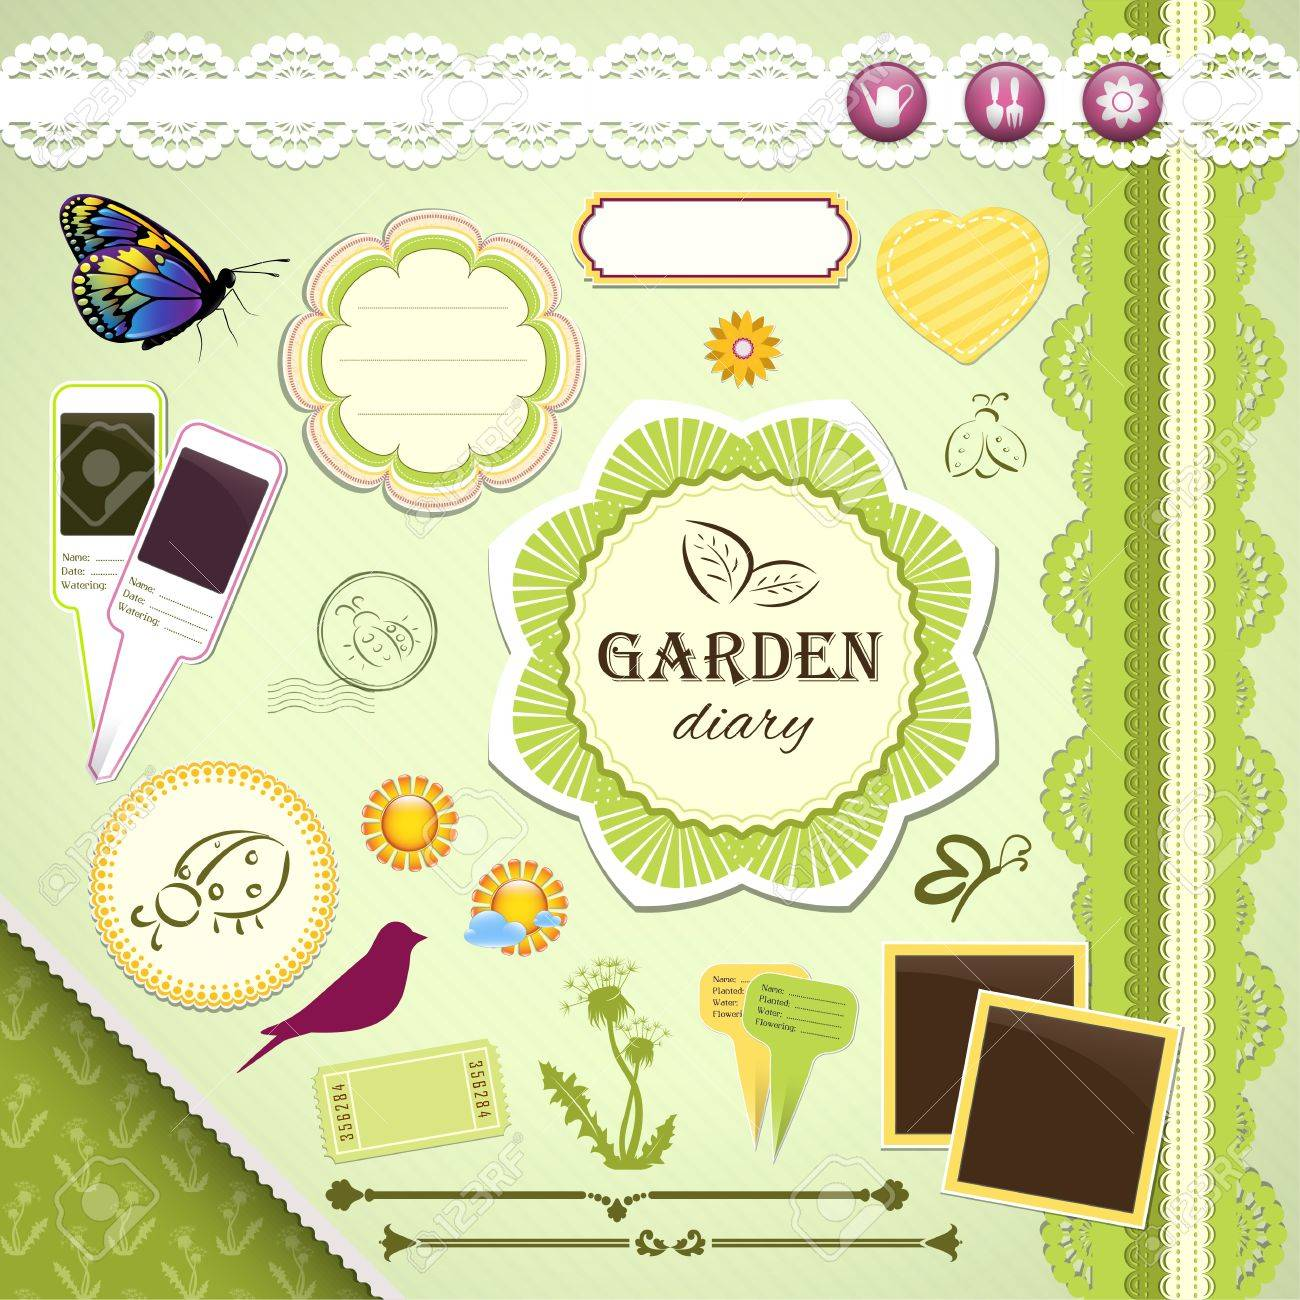 Scrapbooking Set: My Garden Diary - frames, ribbons, dividers, notes and decorations - 18685675